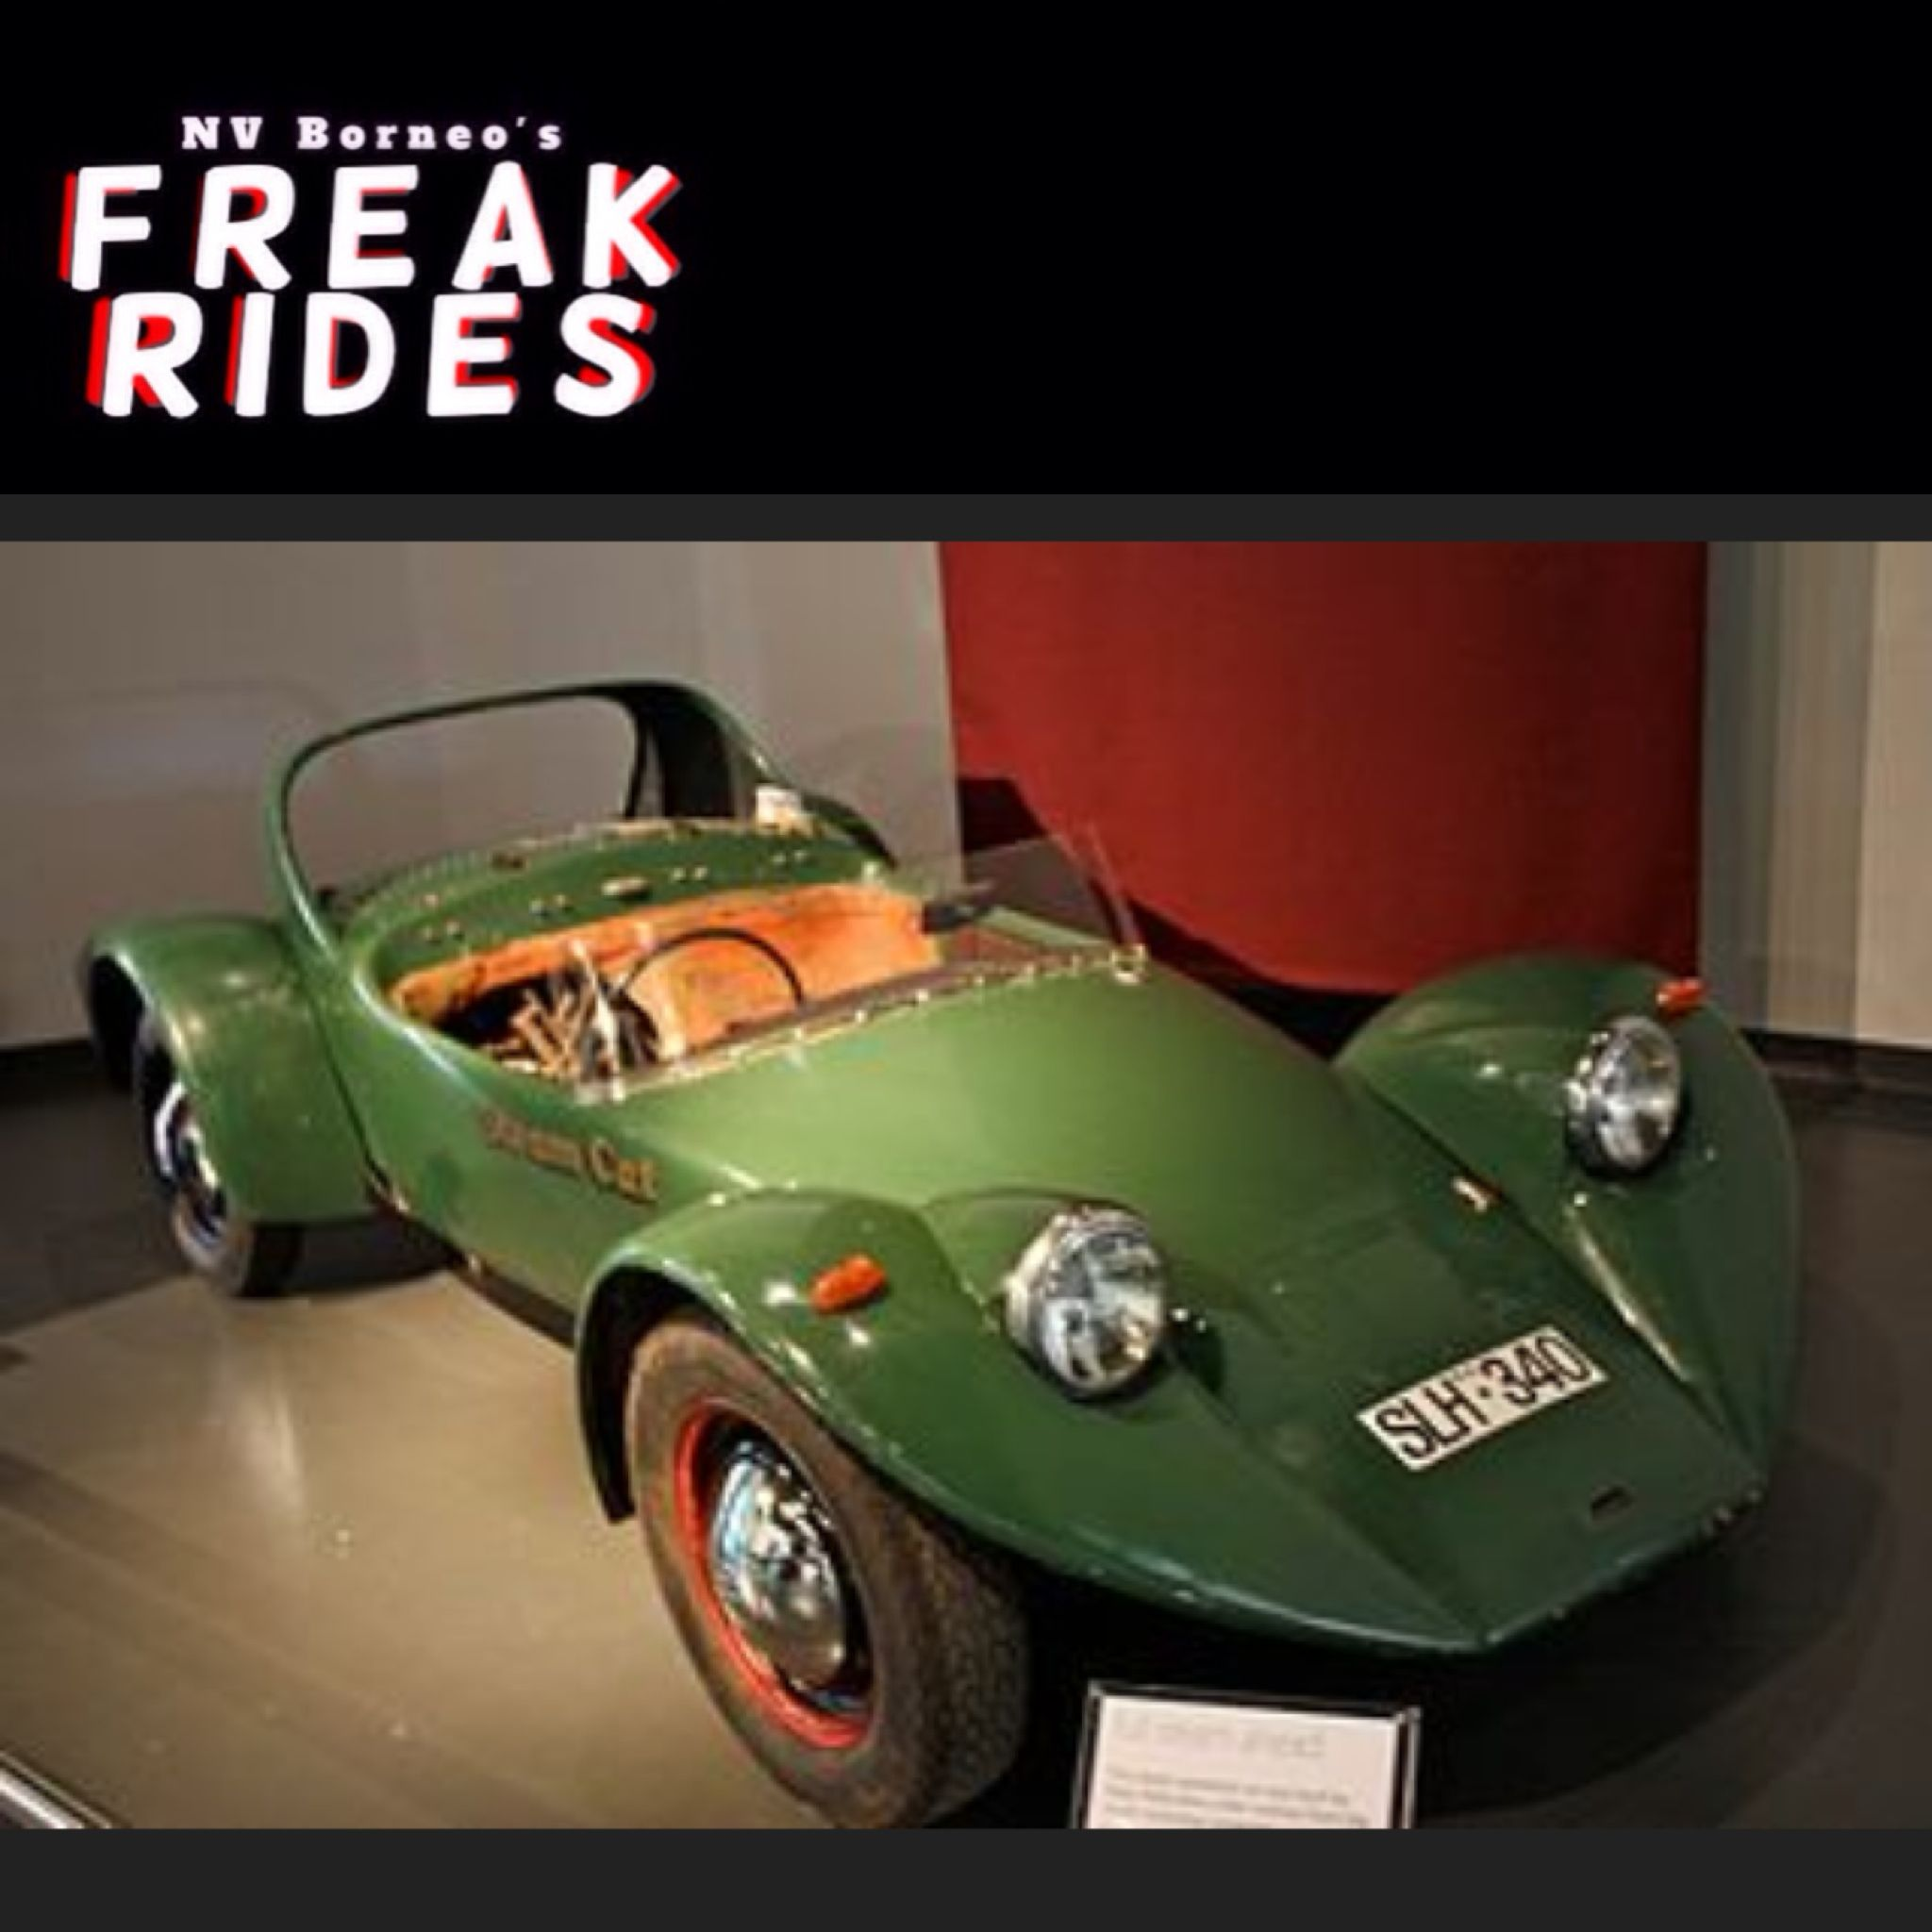 Pin by NVB Remnant on Freak Rides Sports car, Toy car